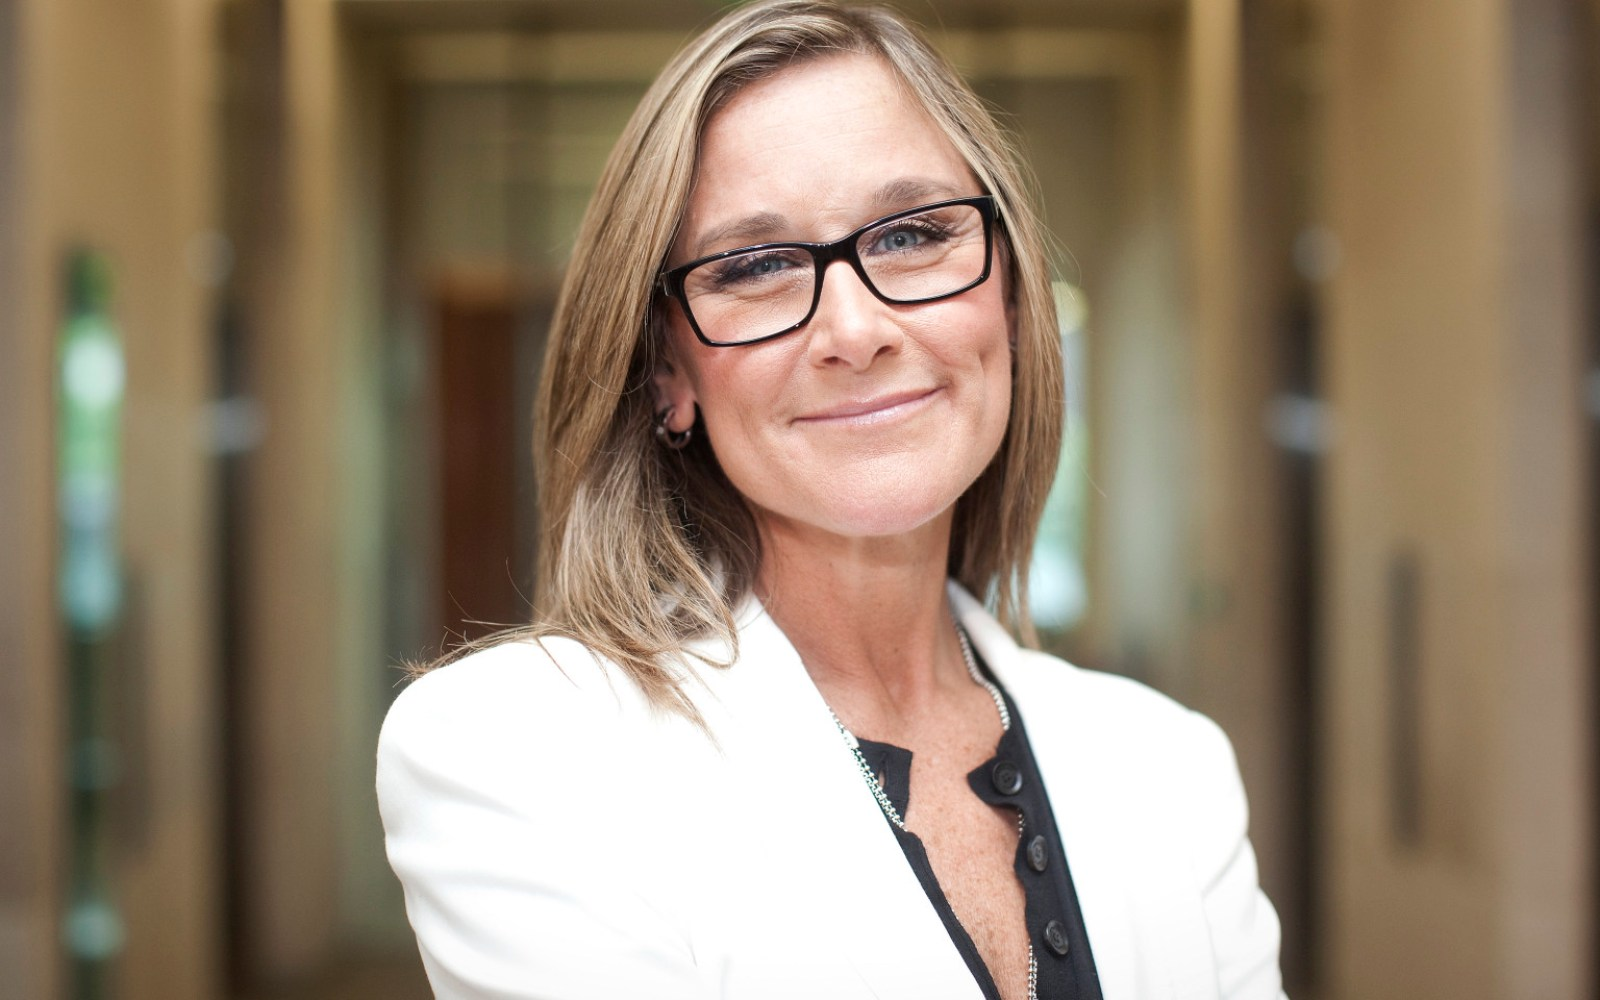 Apple finally finds new Head of Retail: Burberry CEO Angela Ahrendts. Will begin in Spring 2014, run Online Stores too